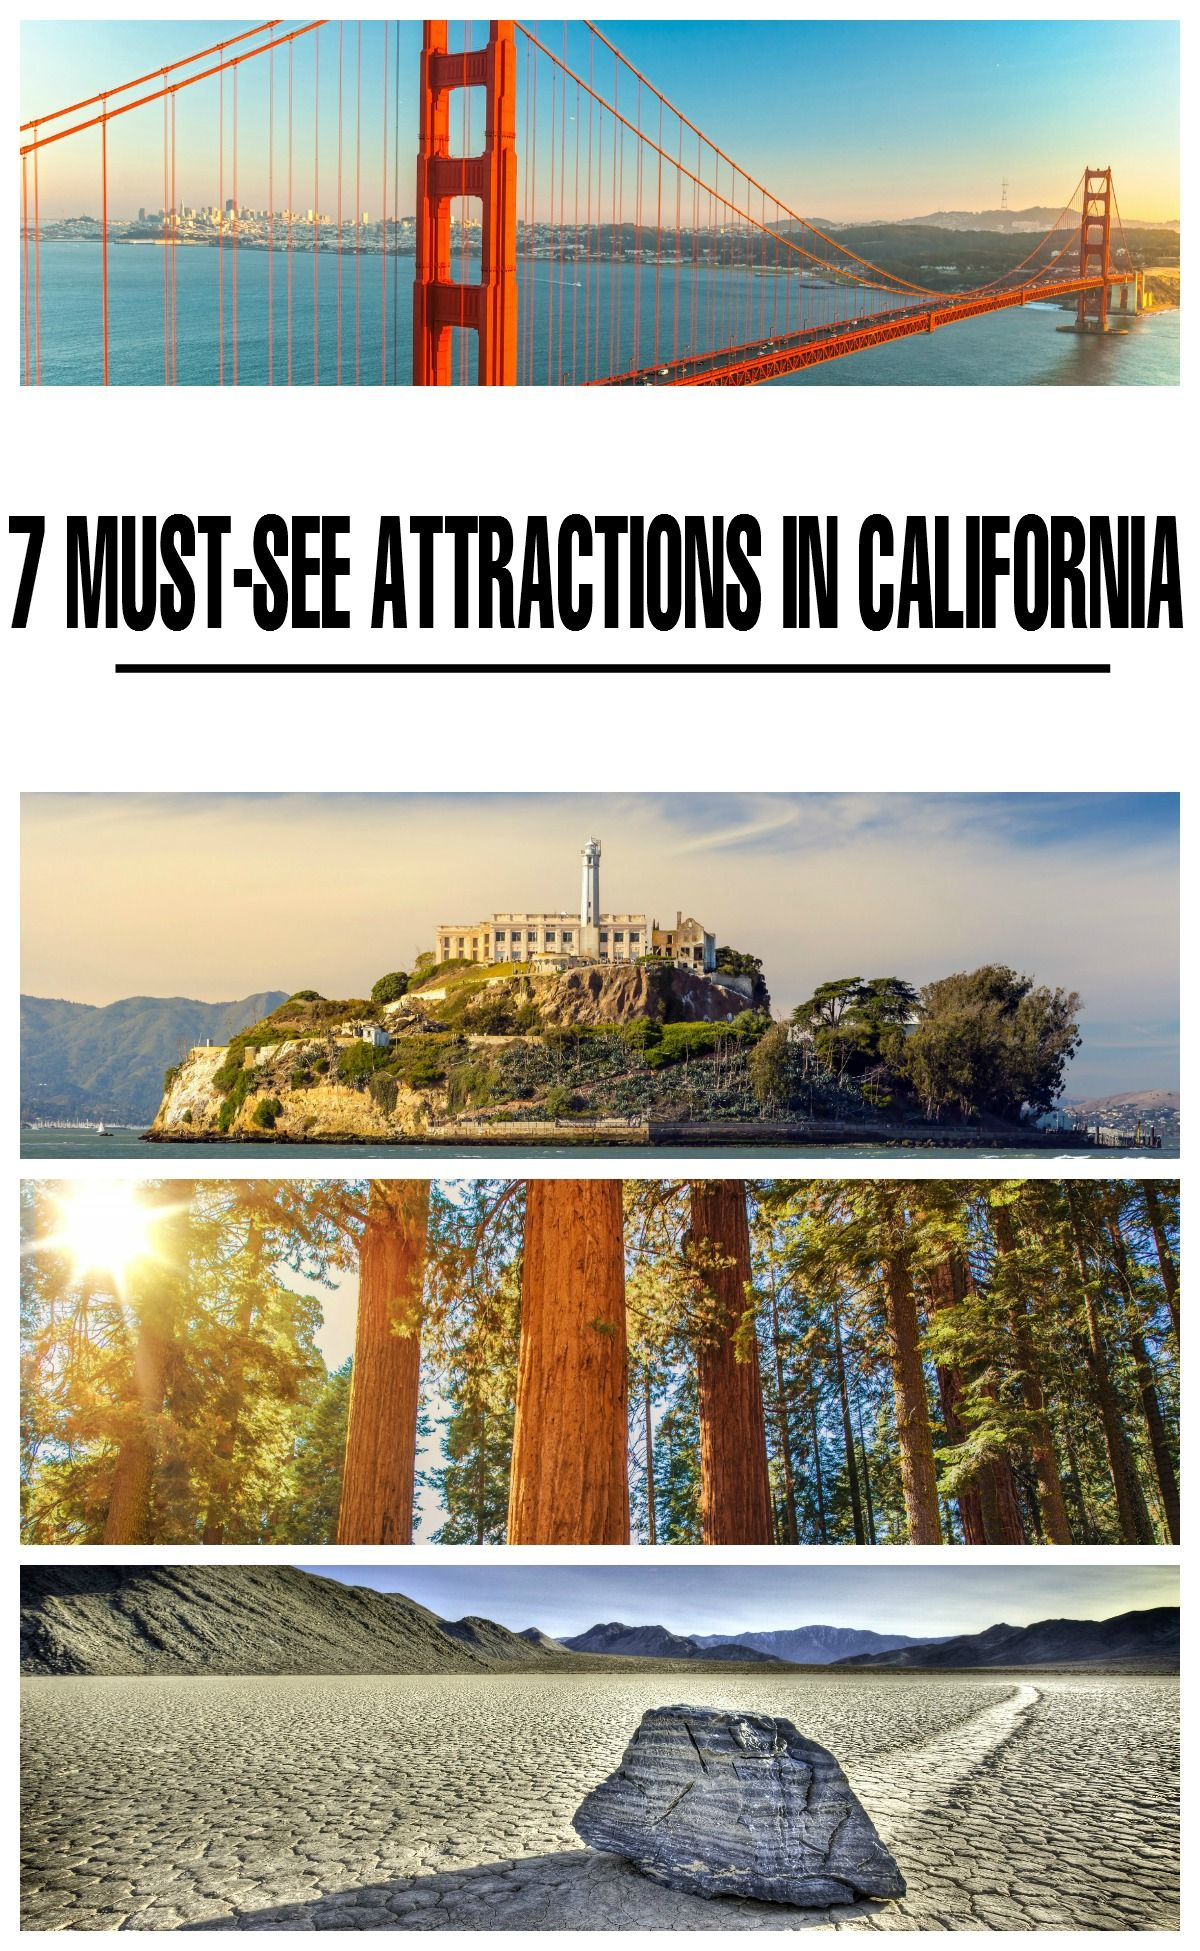 images?q=tbn:ANd9GcQh_l3eQ5xwiPy07kGEXjmjgmBKBRB7H2mRxCGhv1tFWg5c_mWT Top Media Vacation Destinations In California Secret Now @capturingmomentsphotography.net